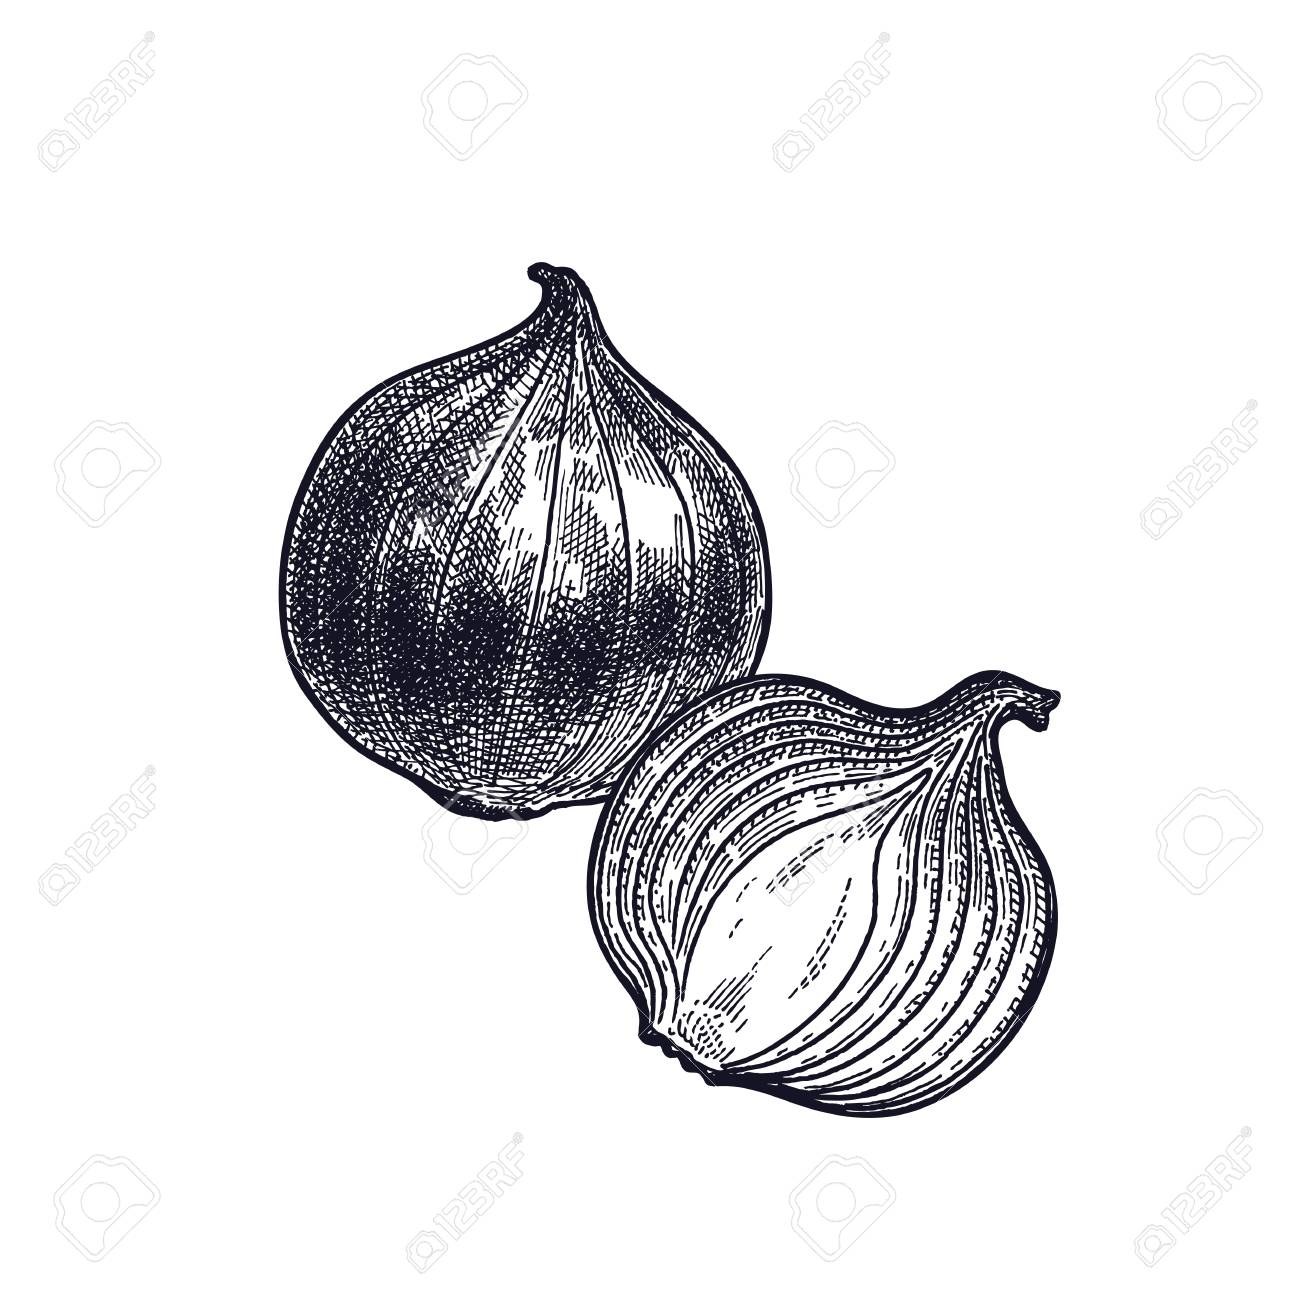 Bulb onions plant isolated vegetarian food for design menu vegetarian food for design menu recipes decoration kitchen forumfinder Choice Image